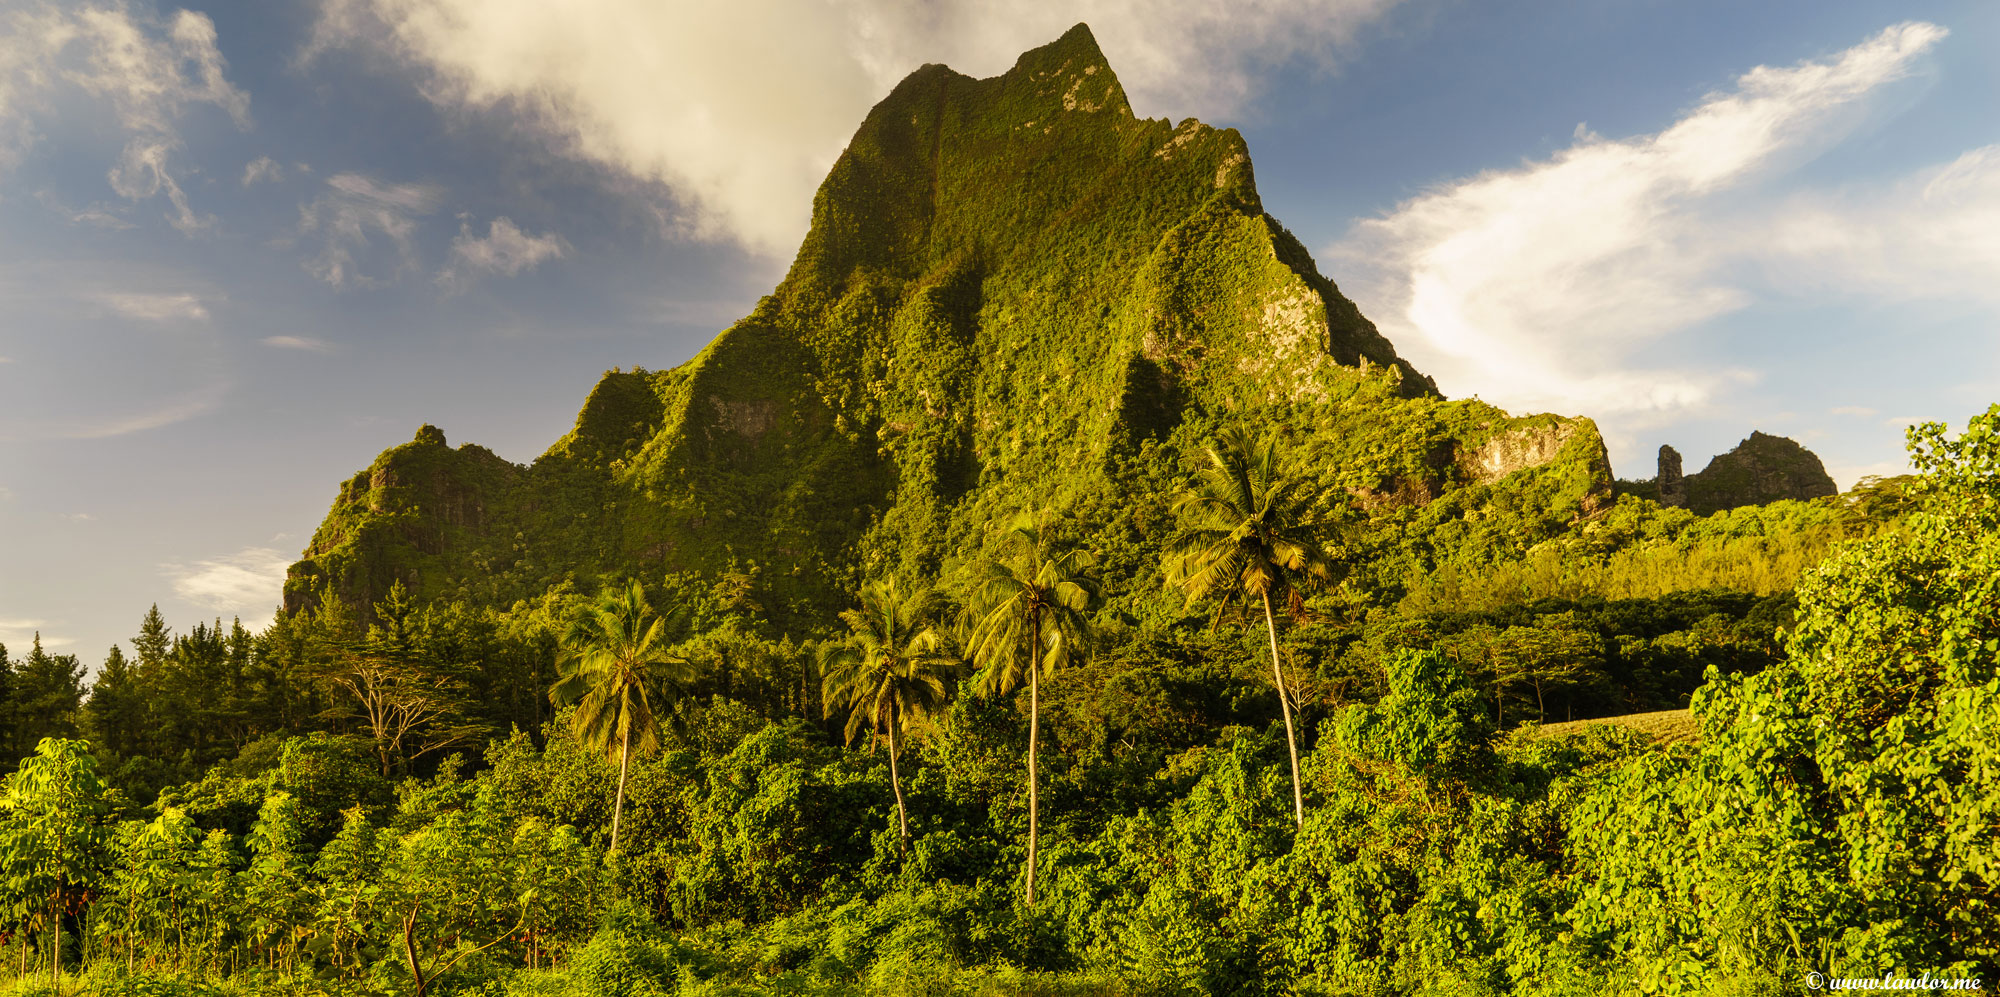 Mount Roto Nui, Moorea - French Polynesia, Free Landscape Photography, free landscape photos, free nature images, free HD images, free high definition stock images, free stock images download, desktop background, desktop wallpapers, free screensaver, landscape photography